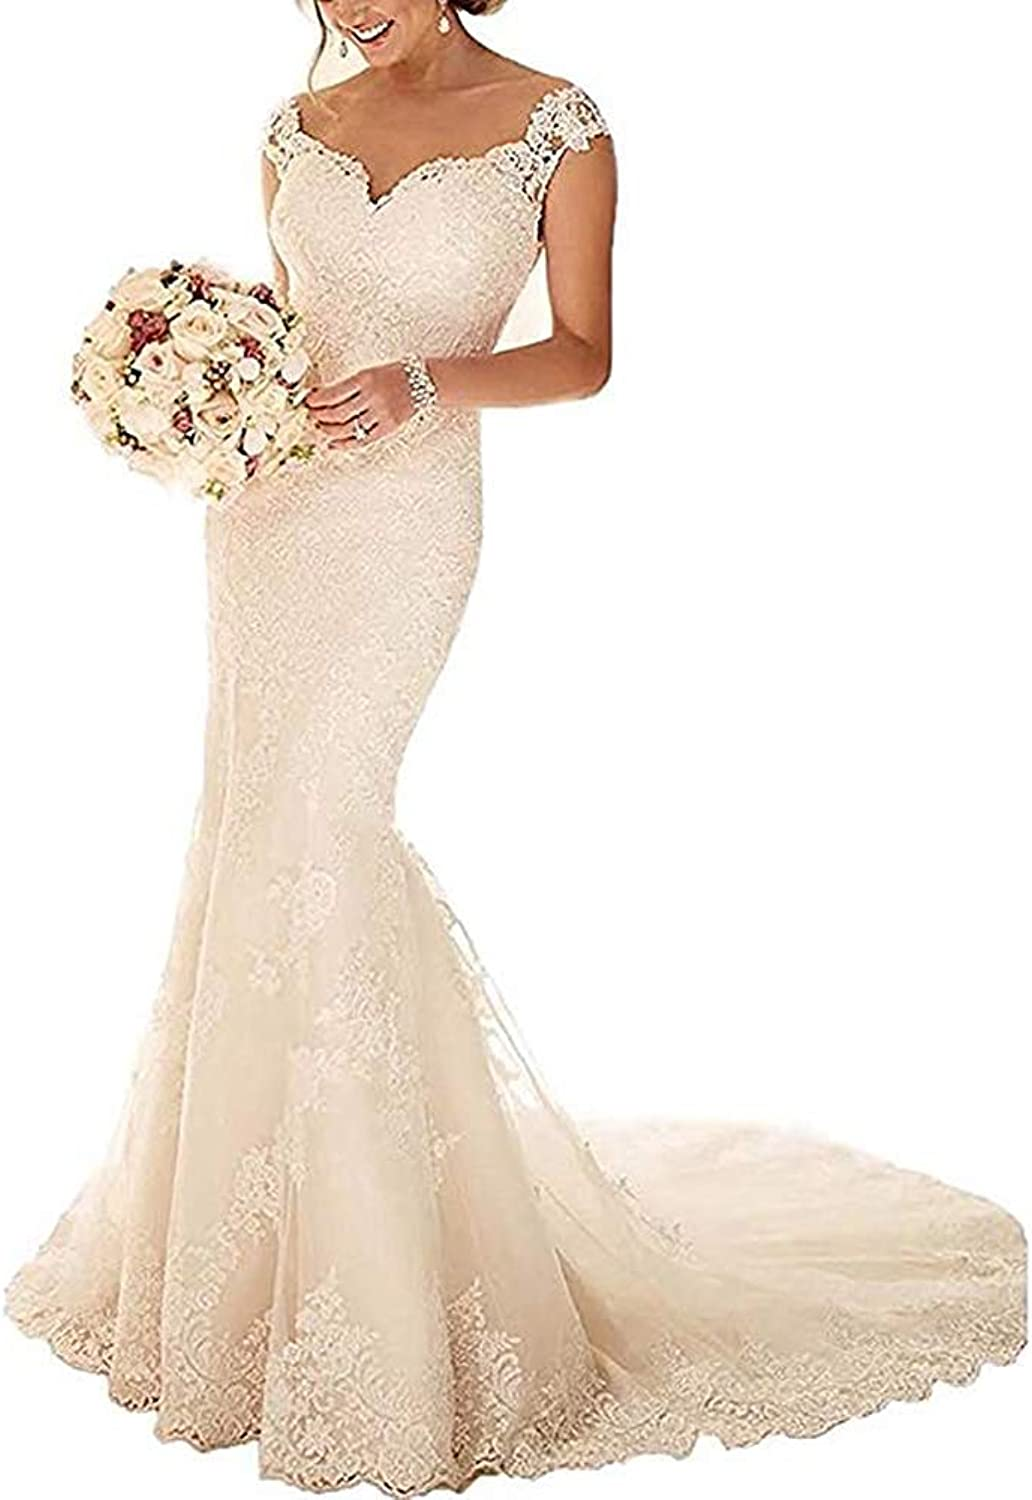 Alexzendra Mermaid Lace Wedding Dresses for Bride 2018 Sweetheart Neck Long Bridal Gowns